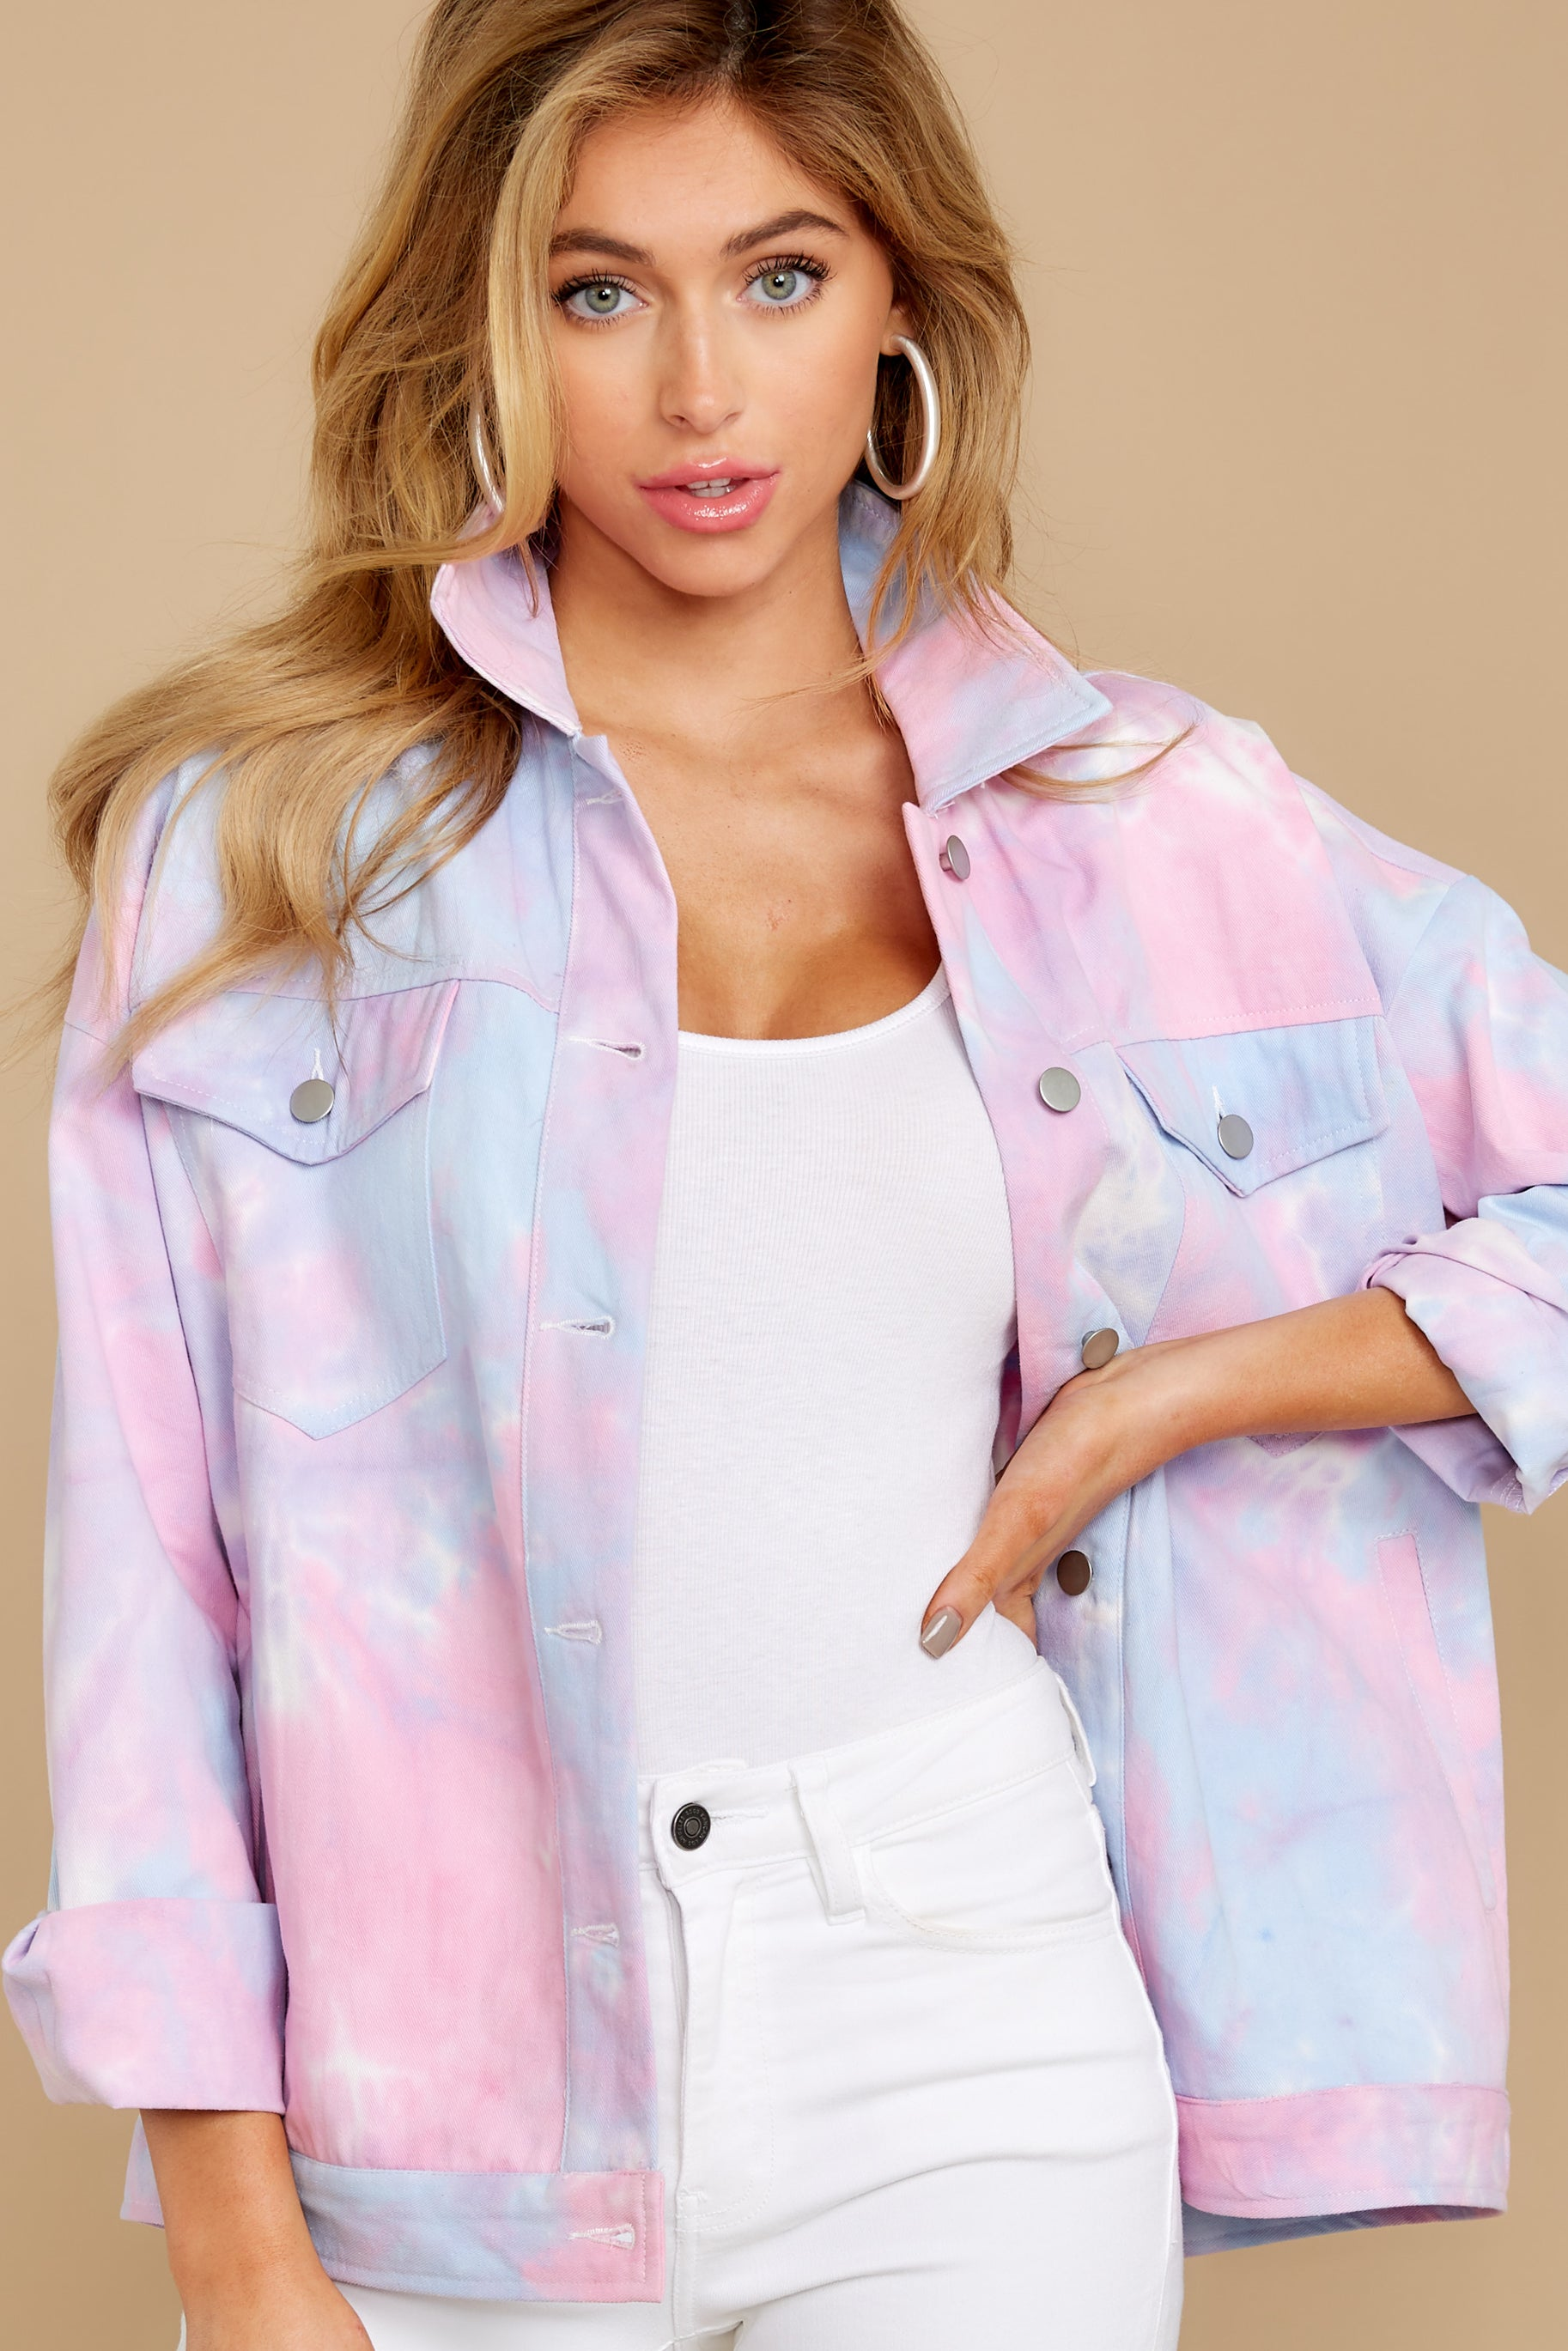 New Vintage Style Coats & Jackets – 30s, 40s, 50s, 60s Got It Covered Pink Multi Tie Dye Jacket $54.00 AT vintagedancer.com